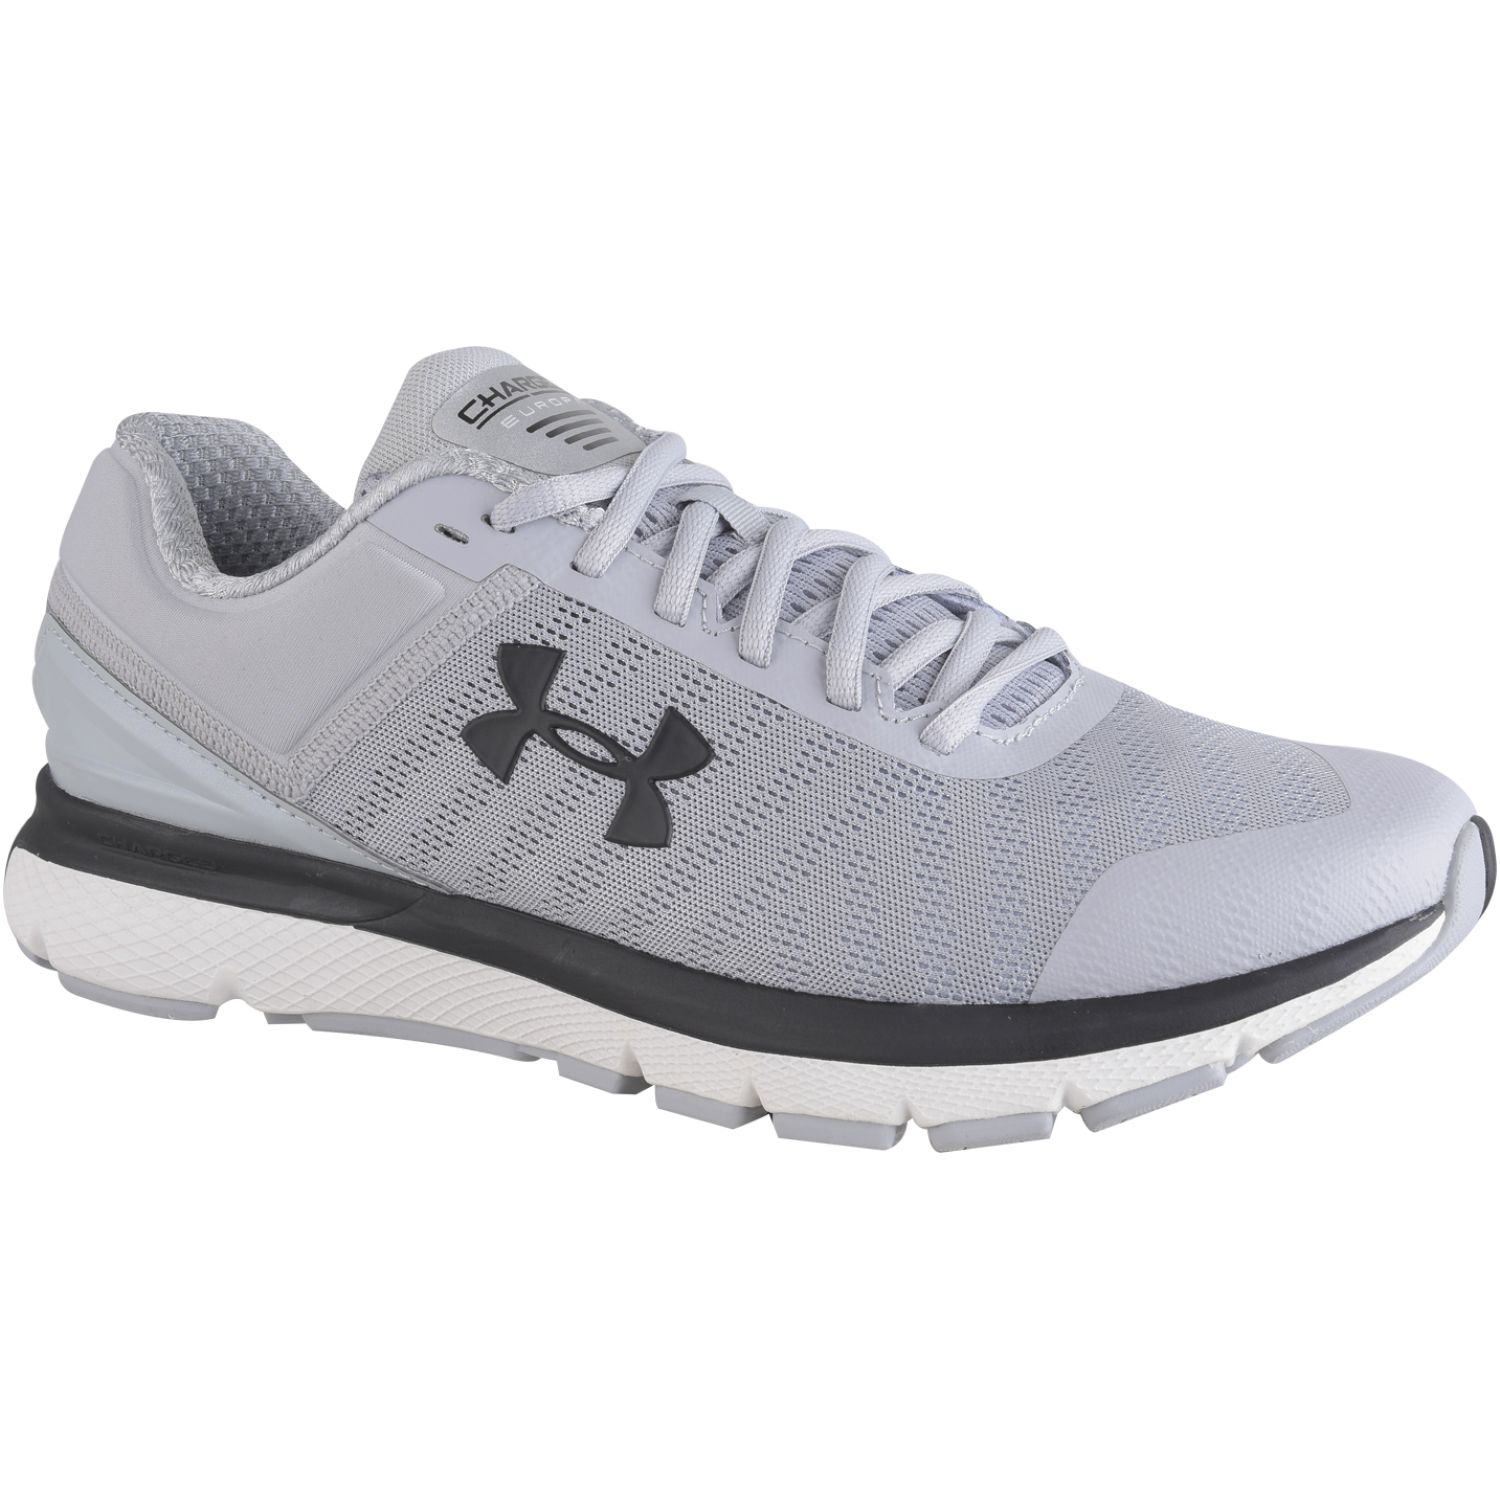 Under Armour UA Charged Europa 2 Gris / negro Running en pista